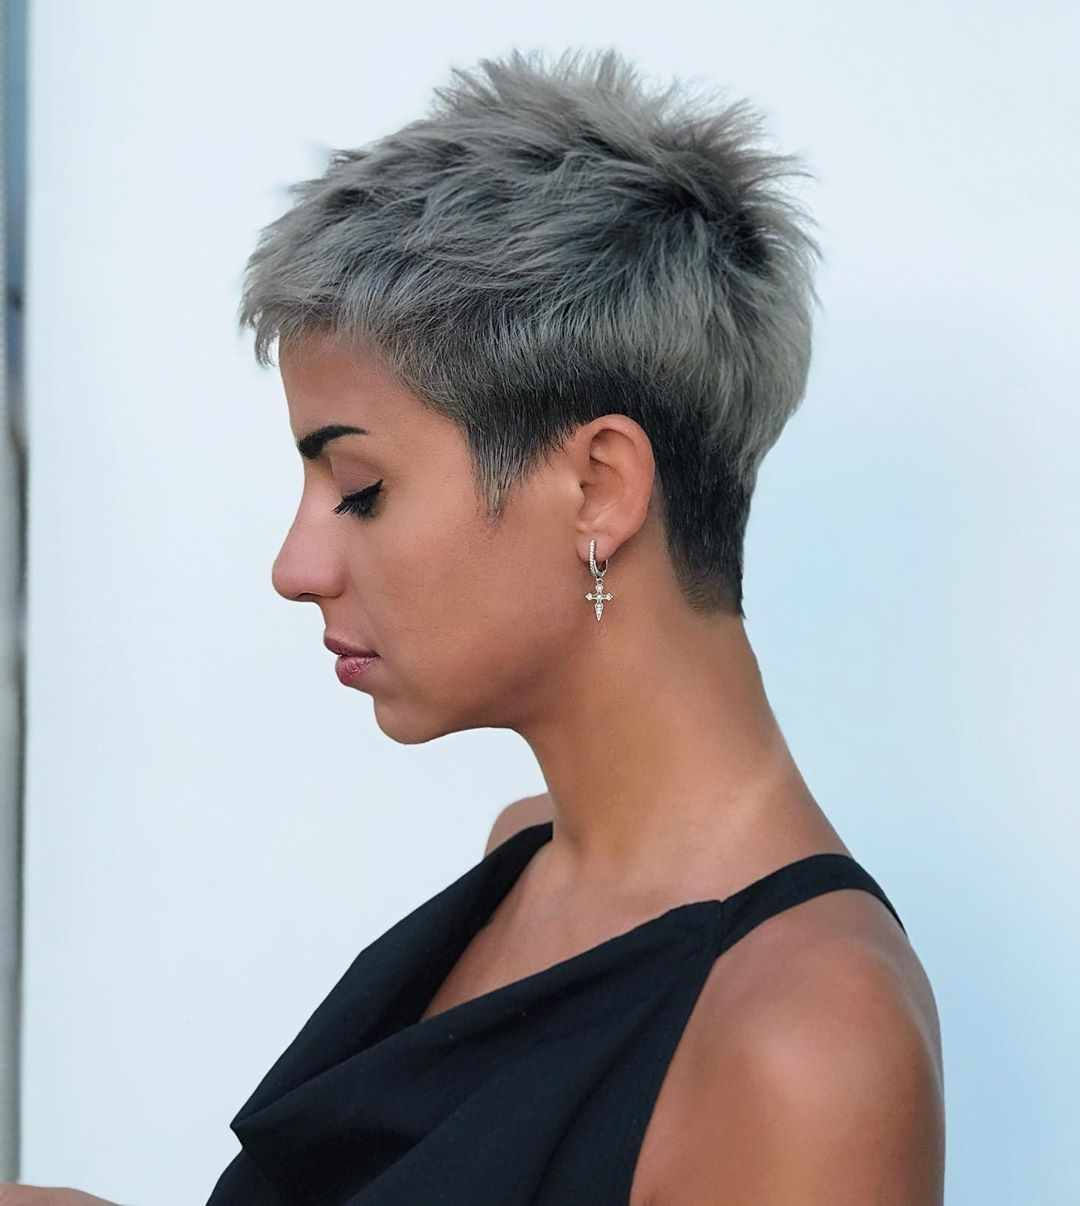 50 Latest Pixie And Bob Haircuts For Women Cute Hairstyles 2019 Short Hair Styles Short Hair Trends Bobs Haircuts